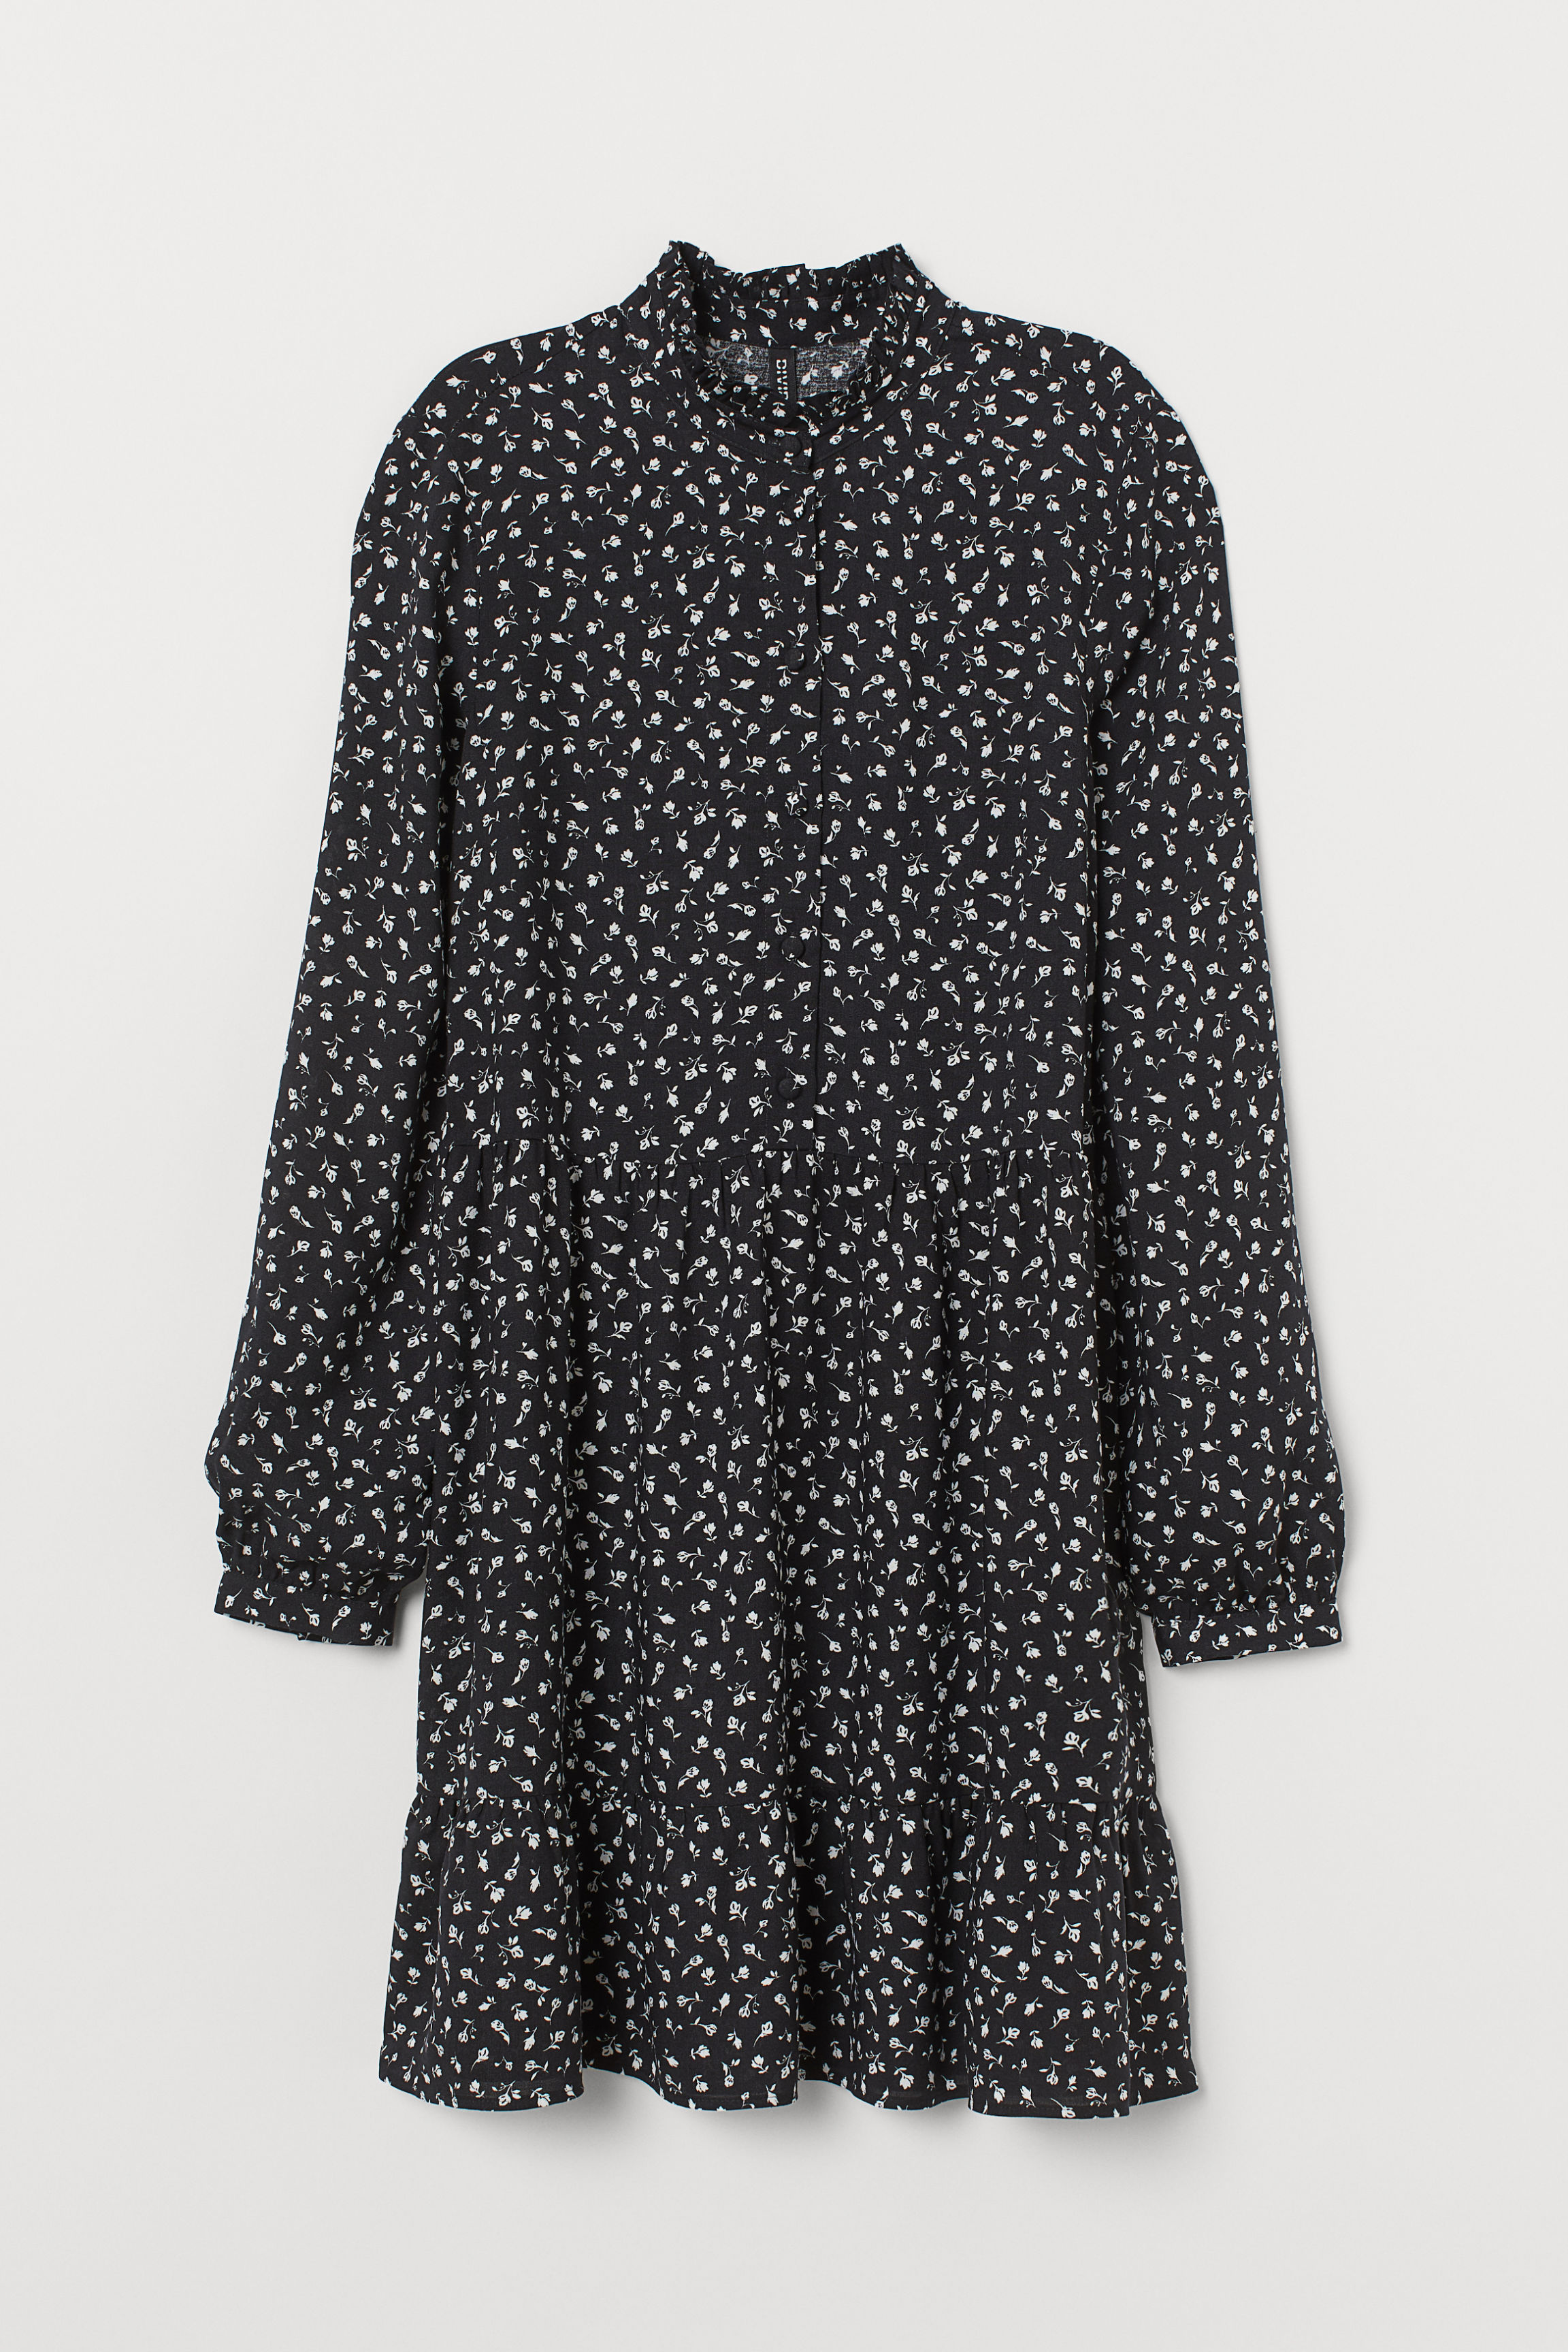 Dress with a stand-up collar - Black/Floral - Ladies | H&M GB